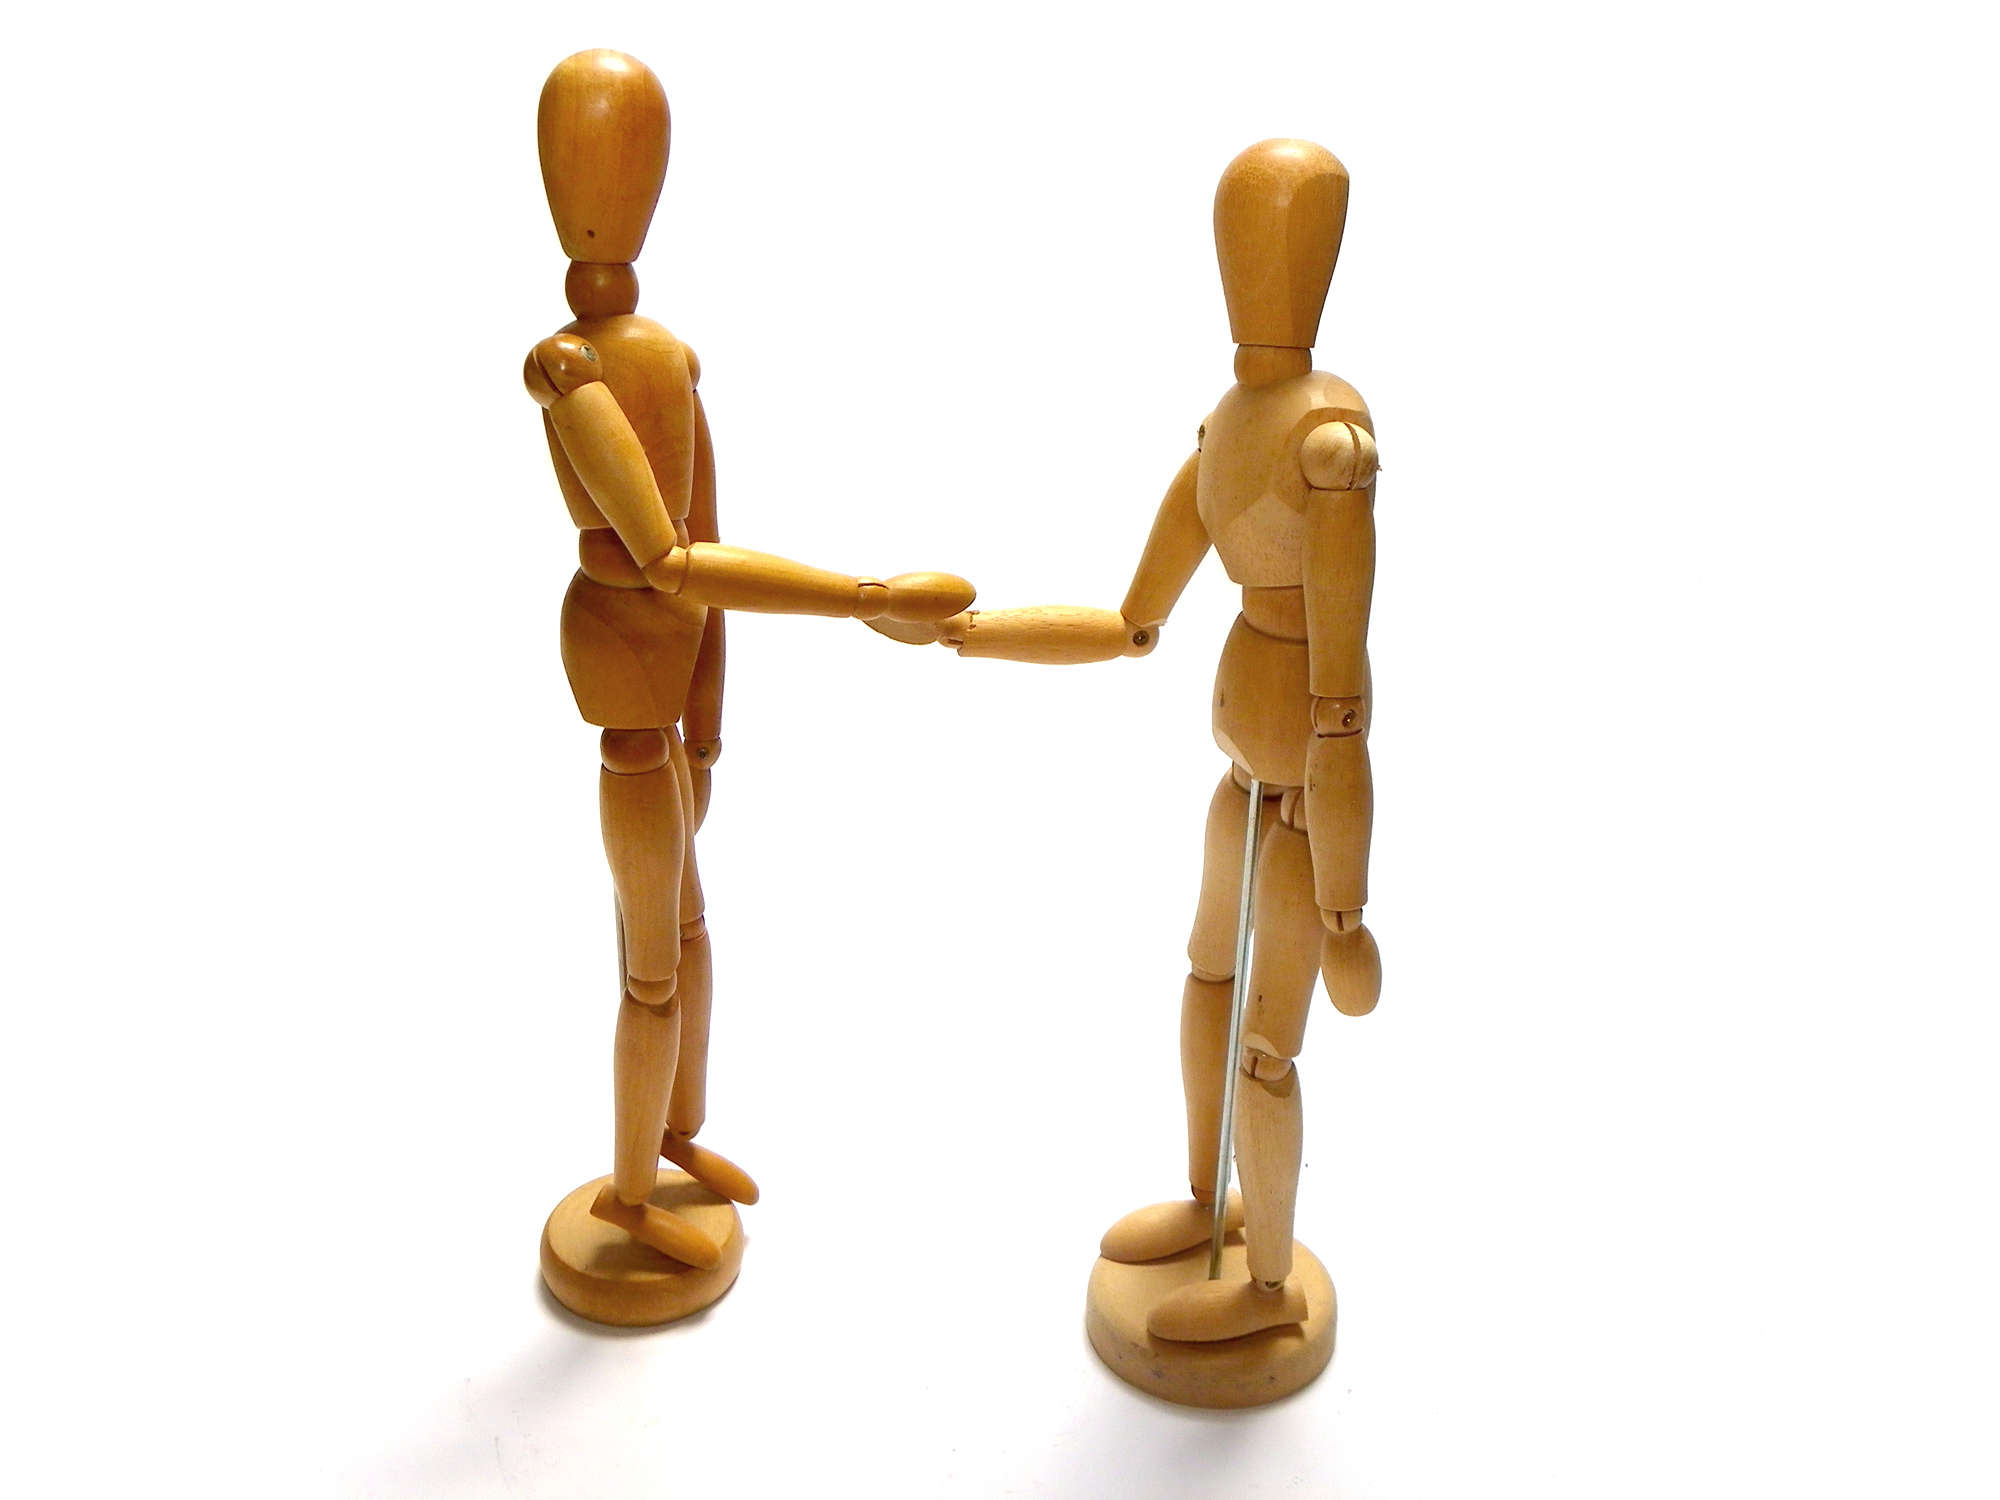 Two wooden figures shaking hands